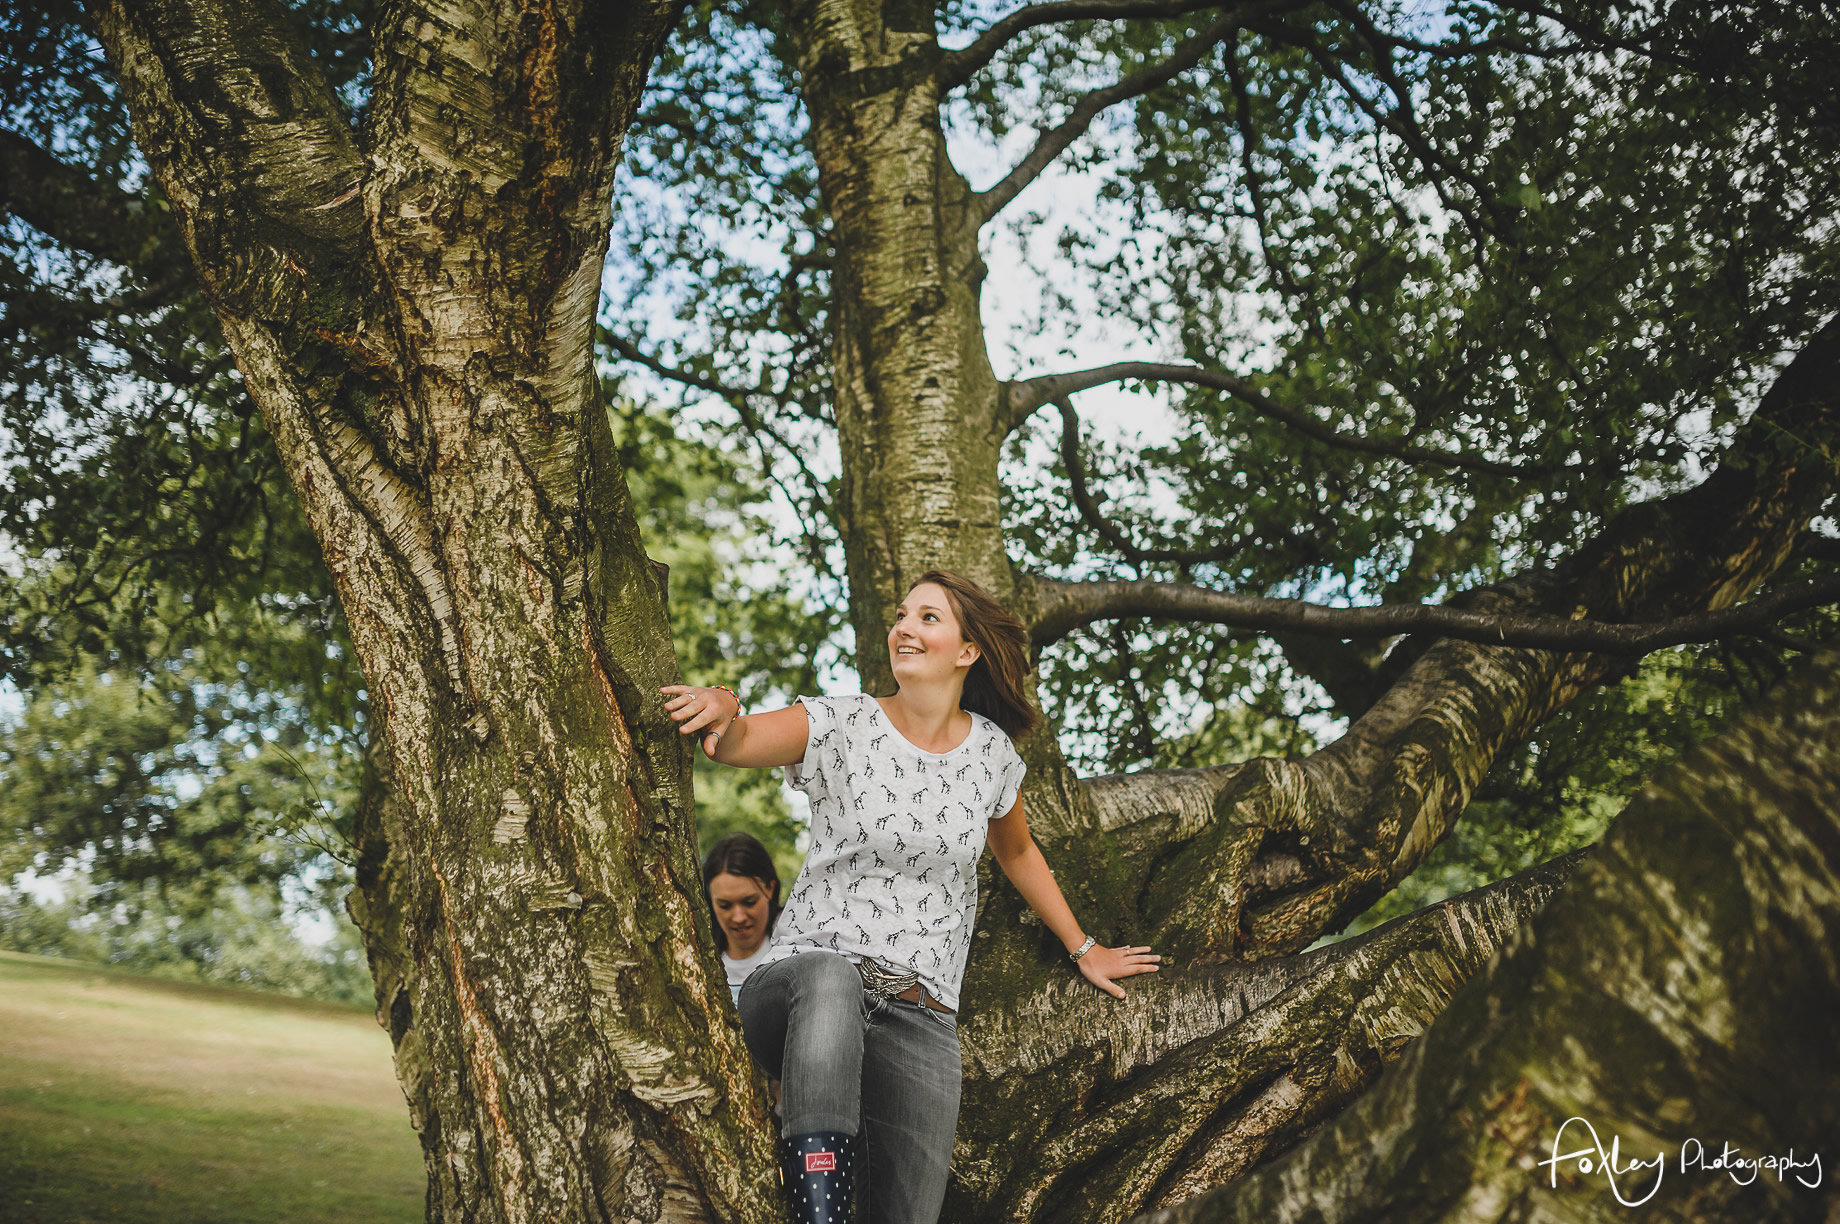 Fran-and-Eli-Pre-Wedding-Shoot-at-Heaton-Park-006